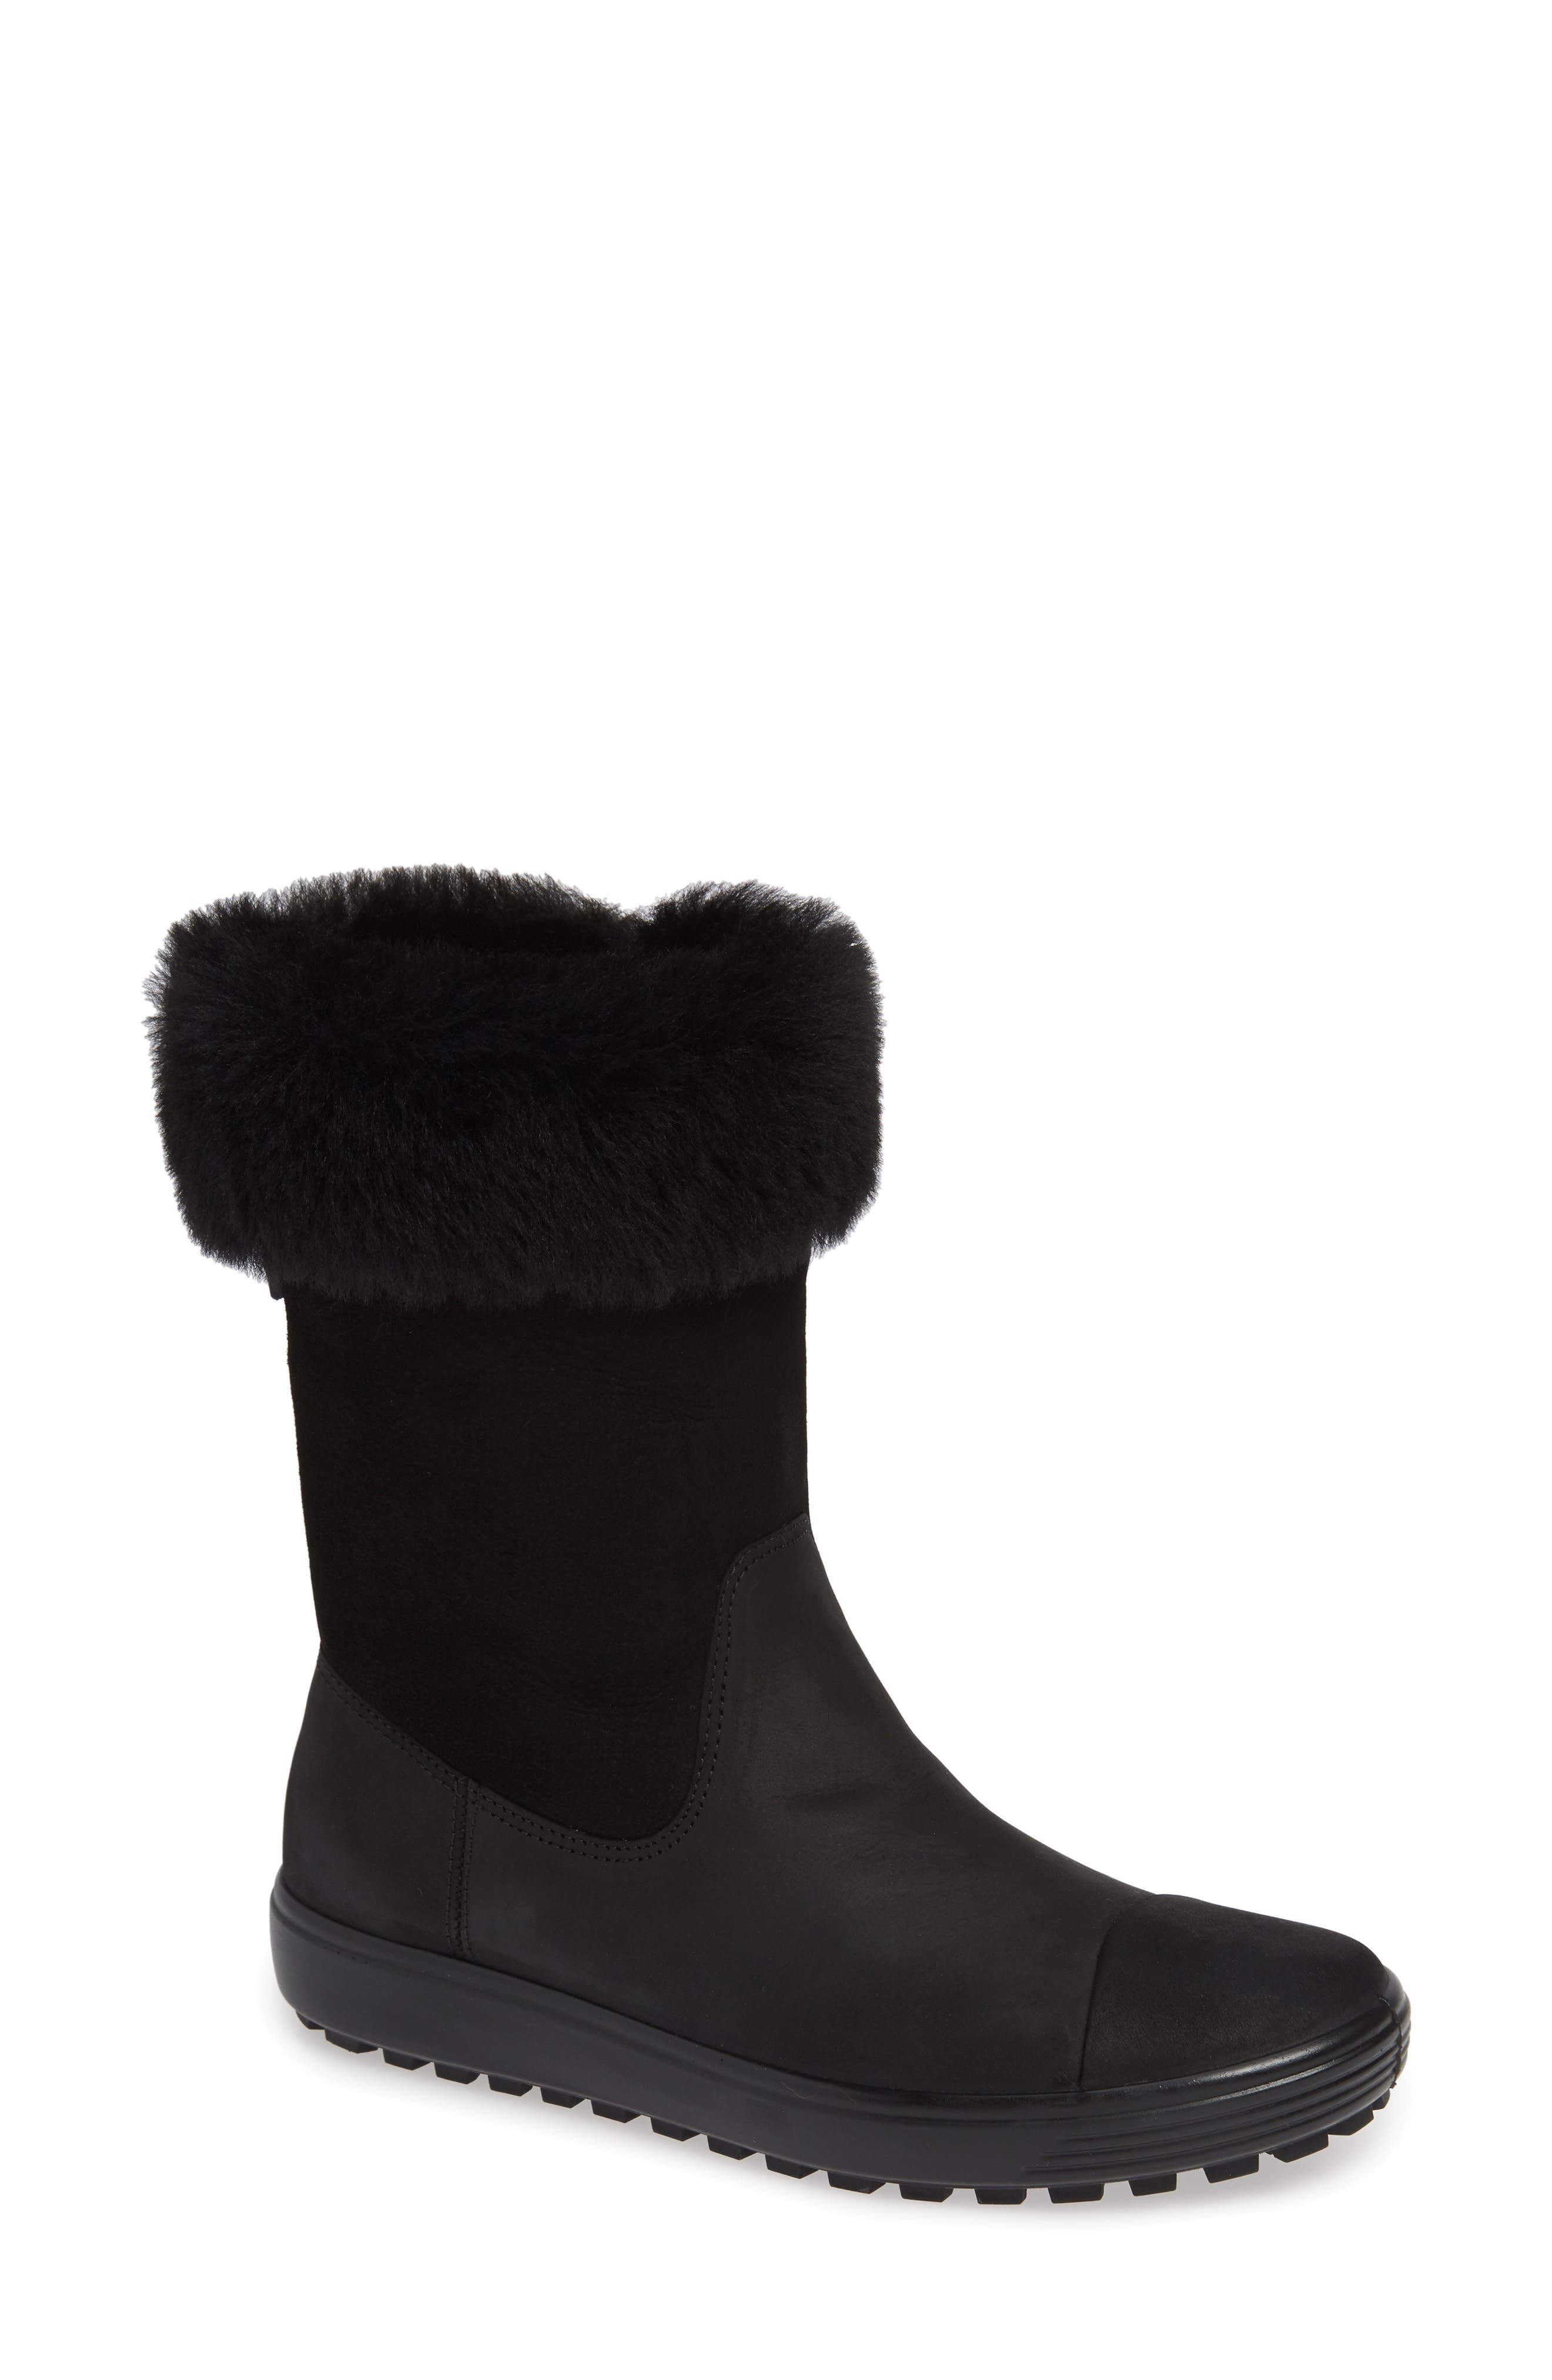 Soft 7 Tred Waterproof Genuine Shearling Lined Boot, Main, color, BLACK NUBUCK LEATHER